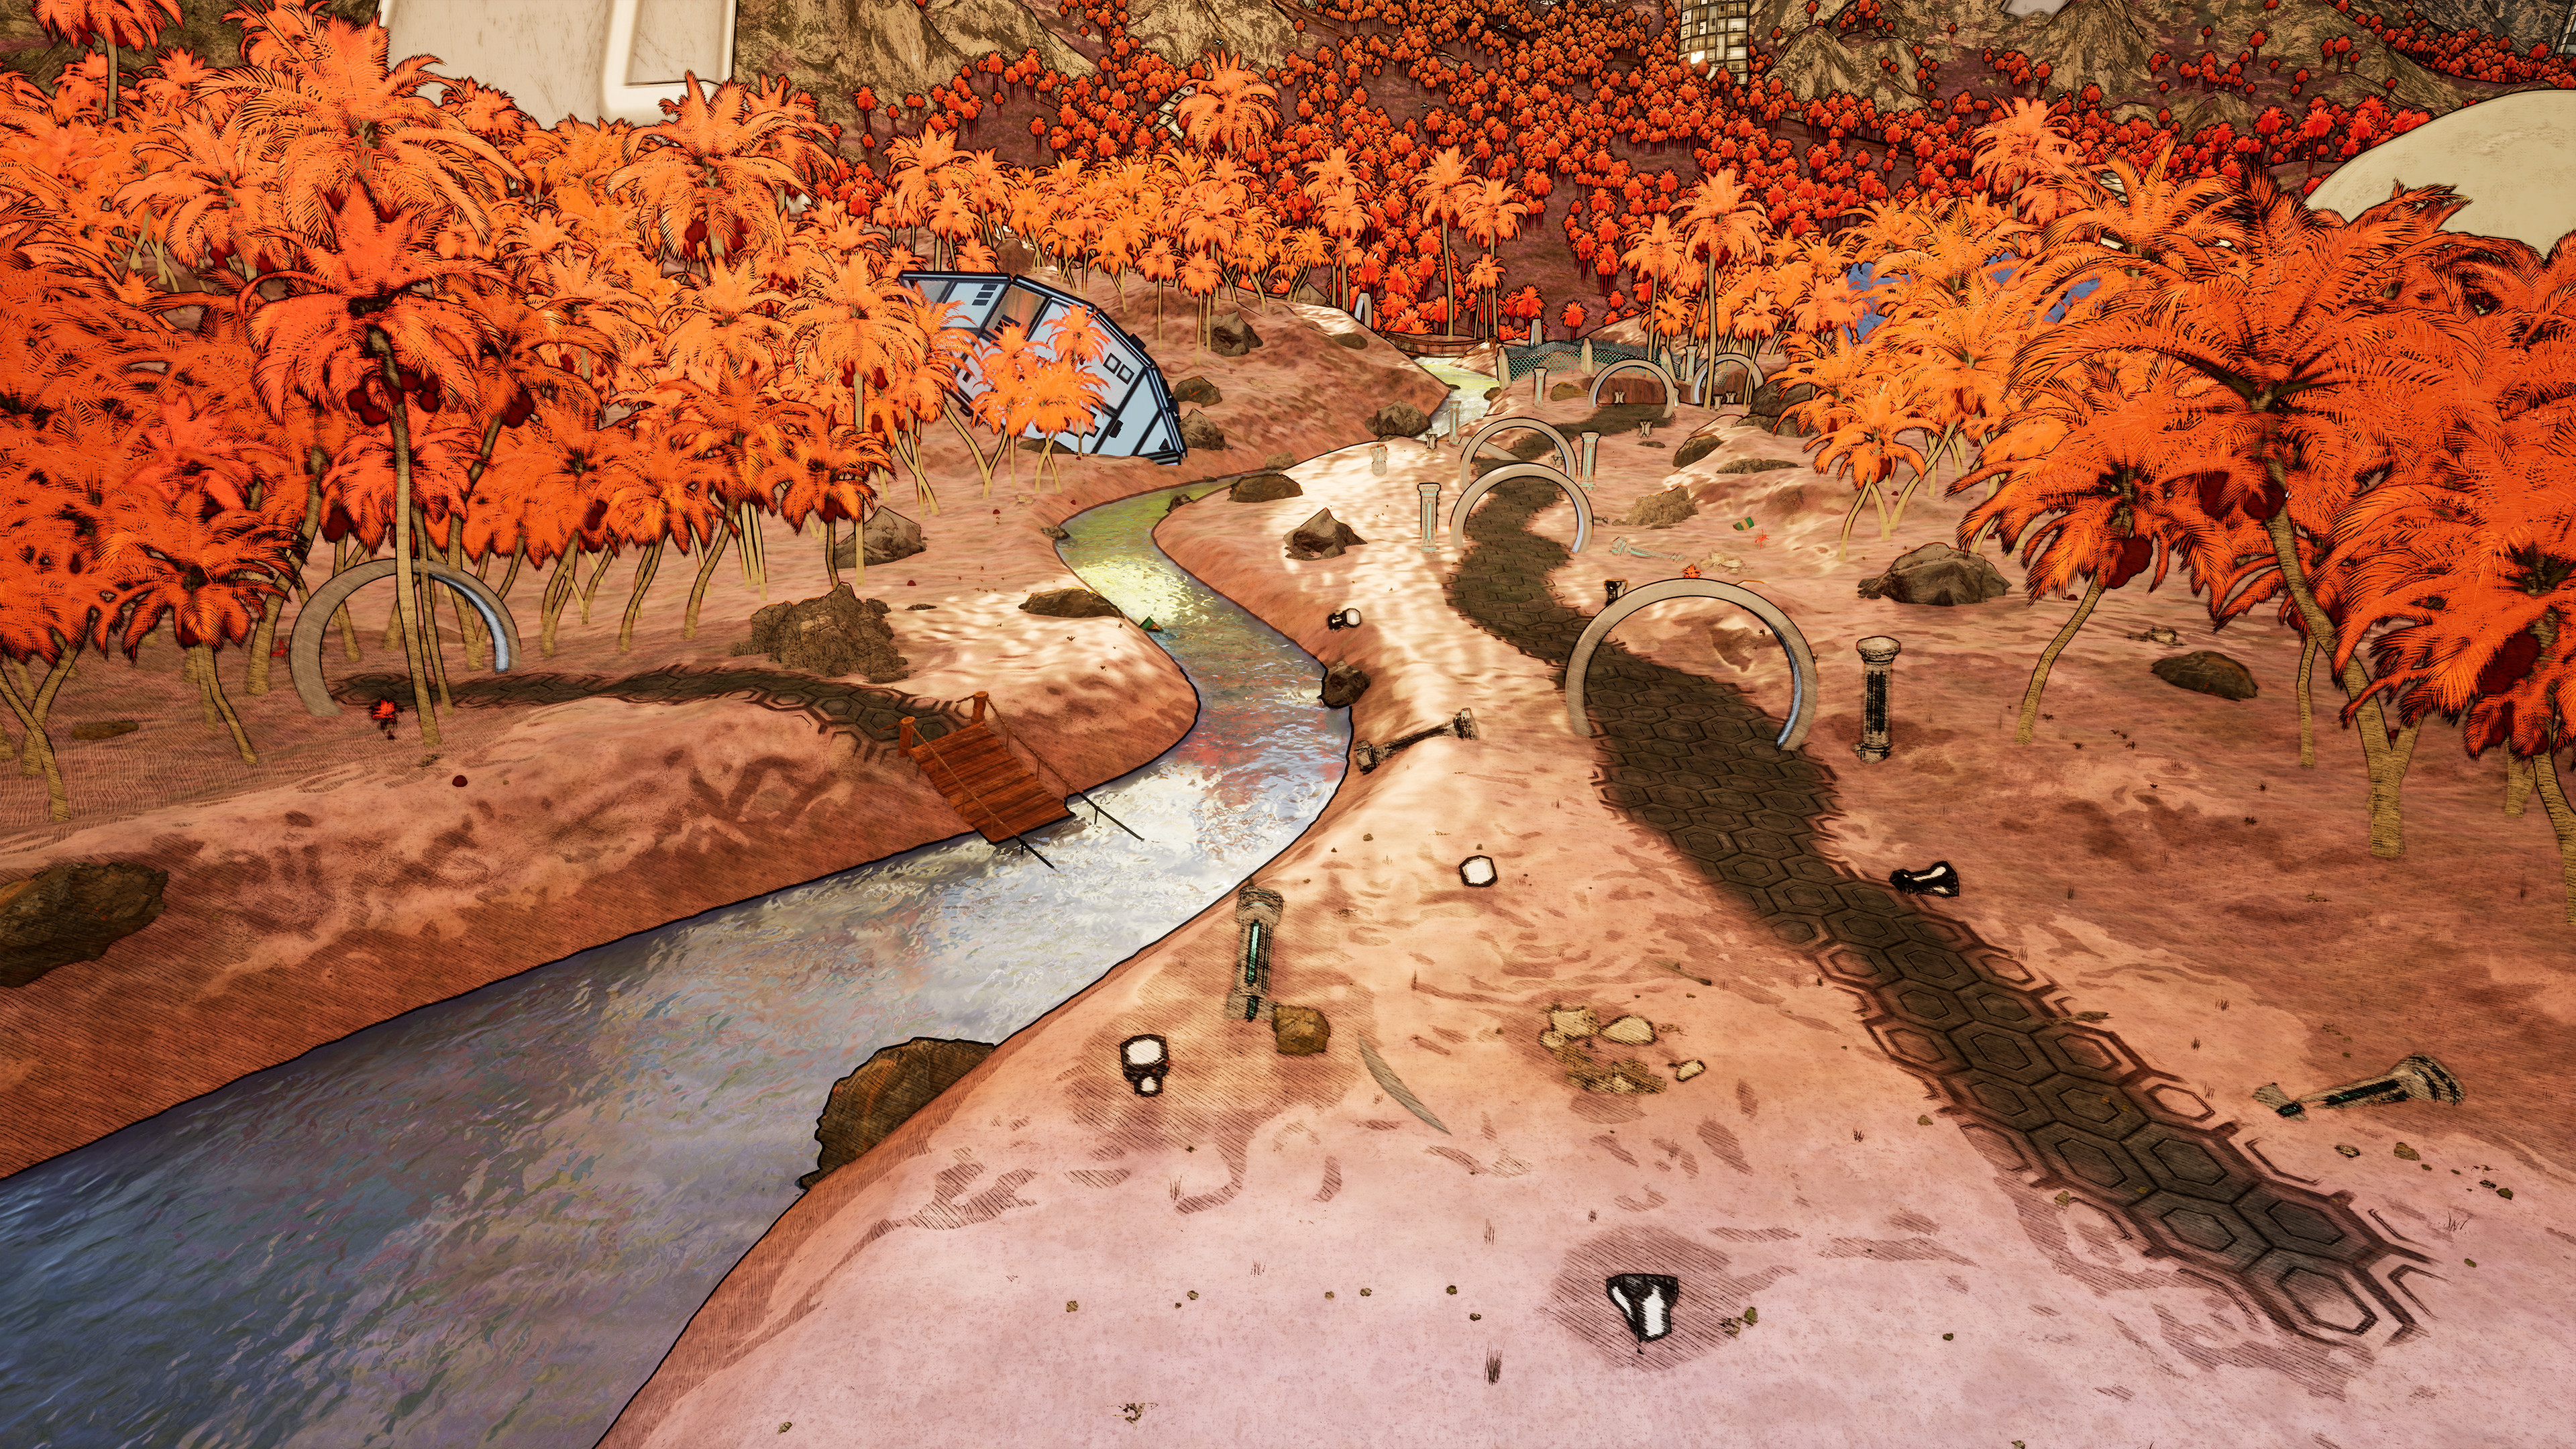 The river and path the player takes as they go down to the beach